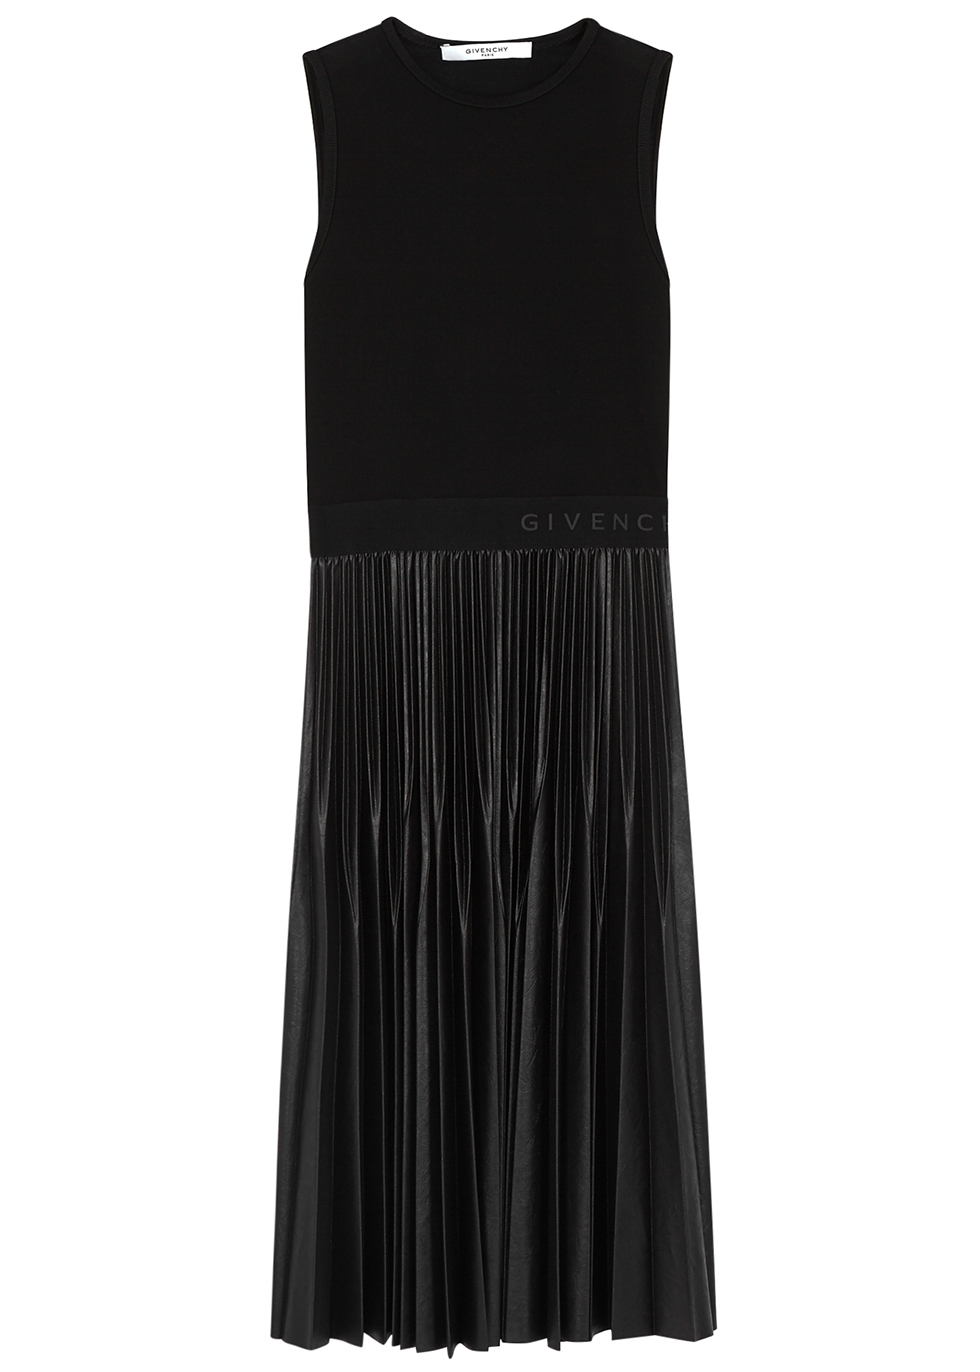 Black faux-leather and jersey midi dress - Givenchy